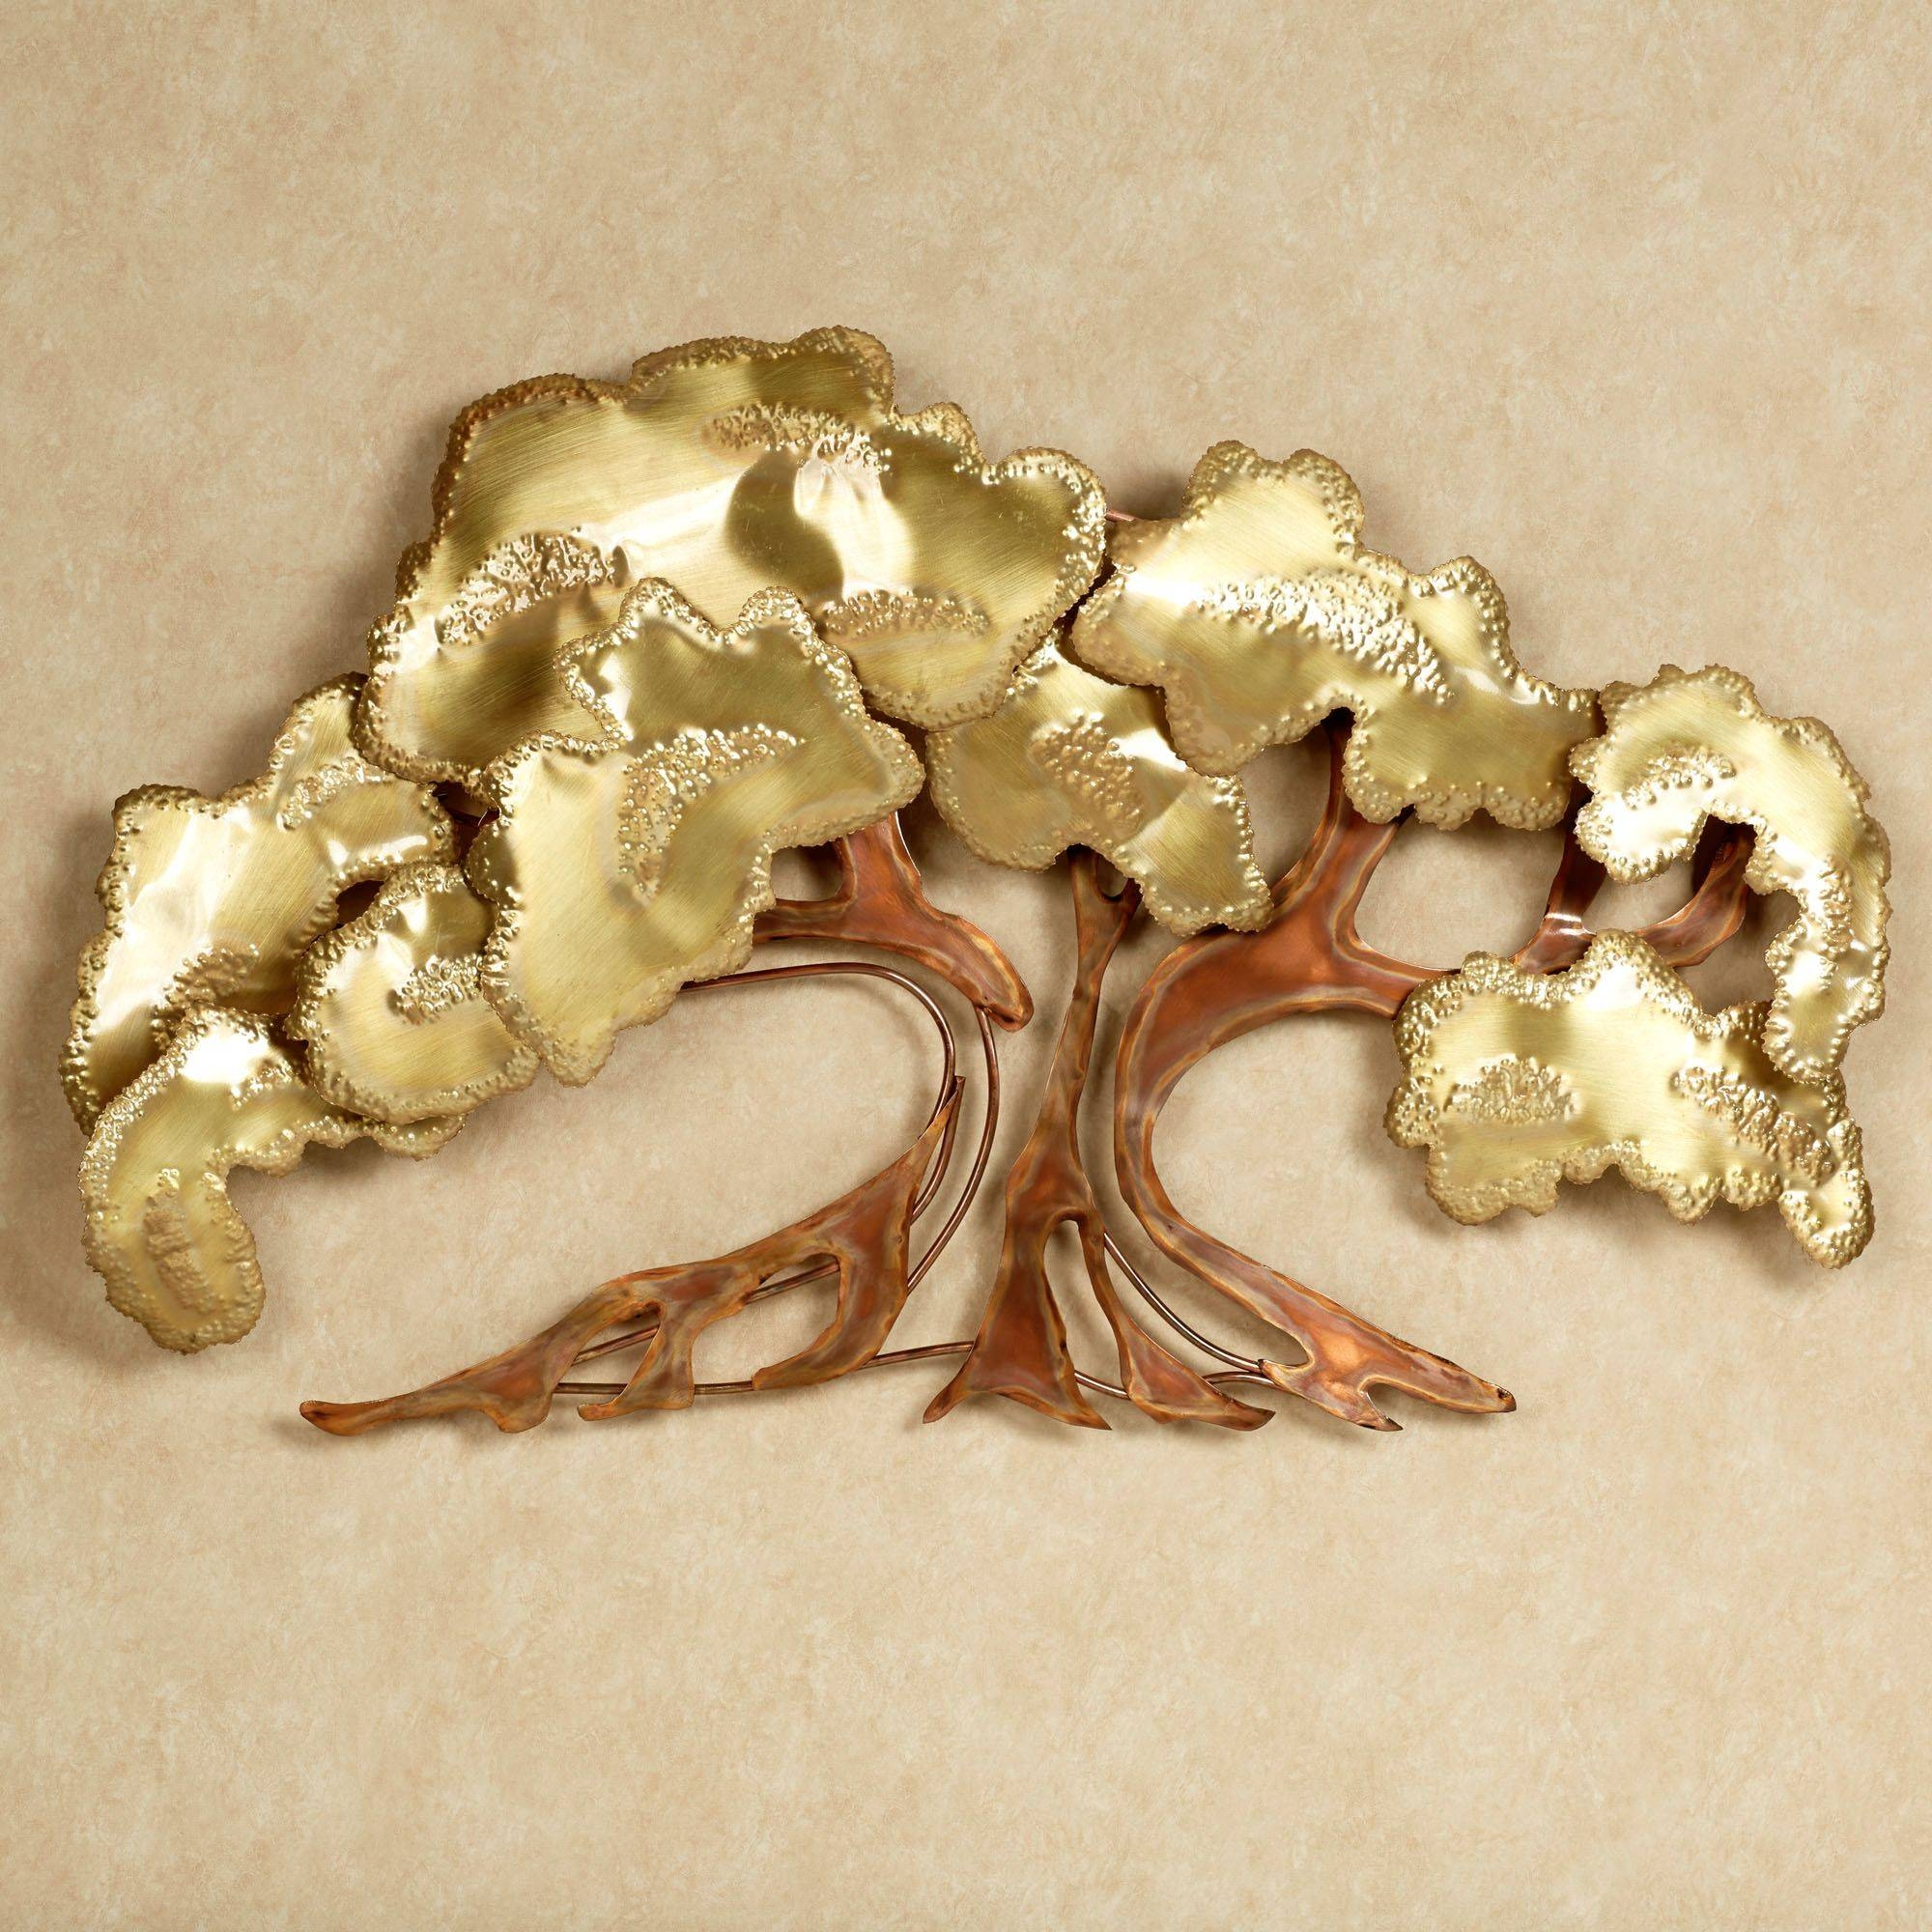 Unique Tree Of Life Metal Wall Art Decor Sculpture Desaign With Pertaining To Recent Unique Metal Wall Art (View 8 of 20)